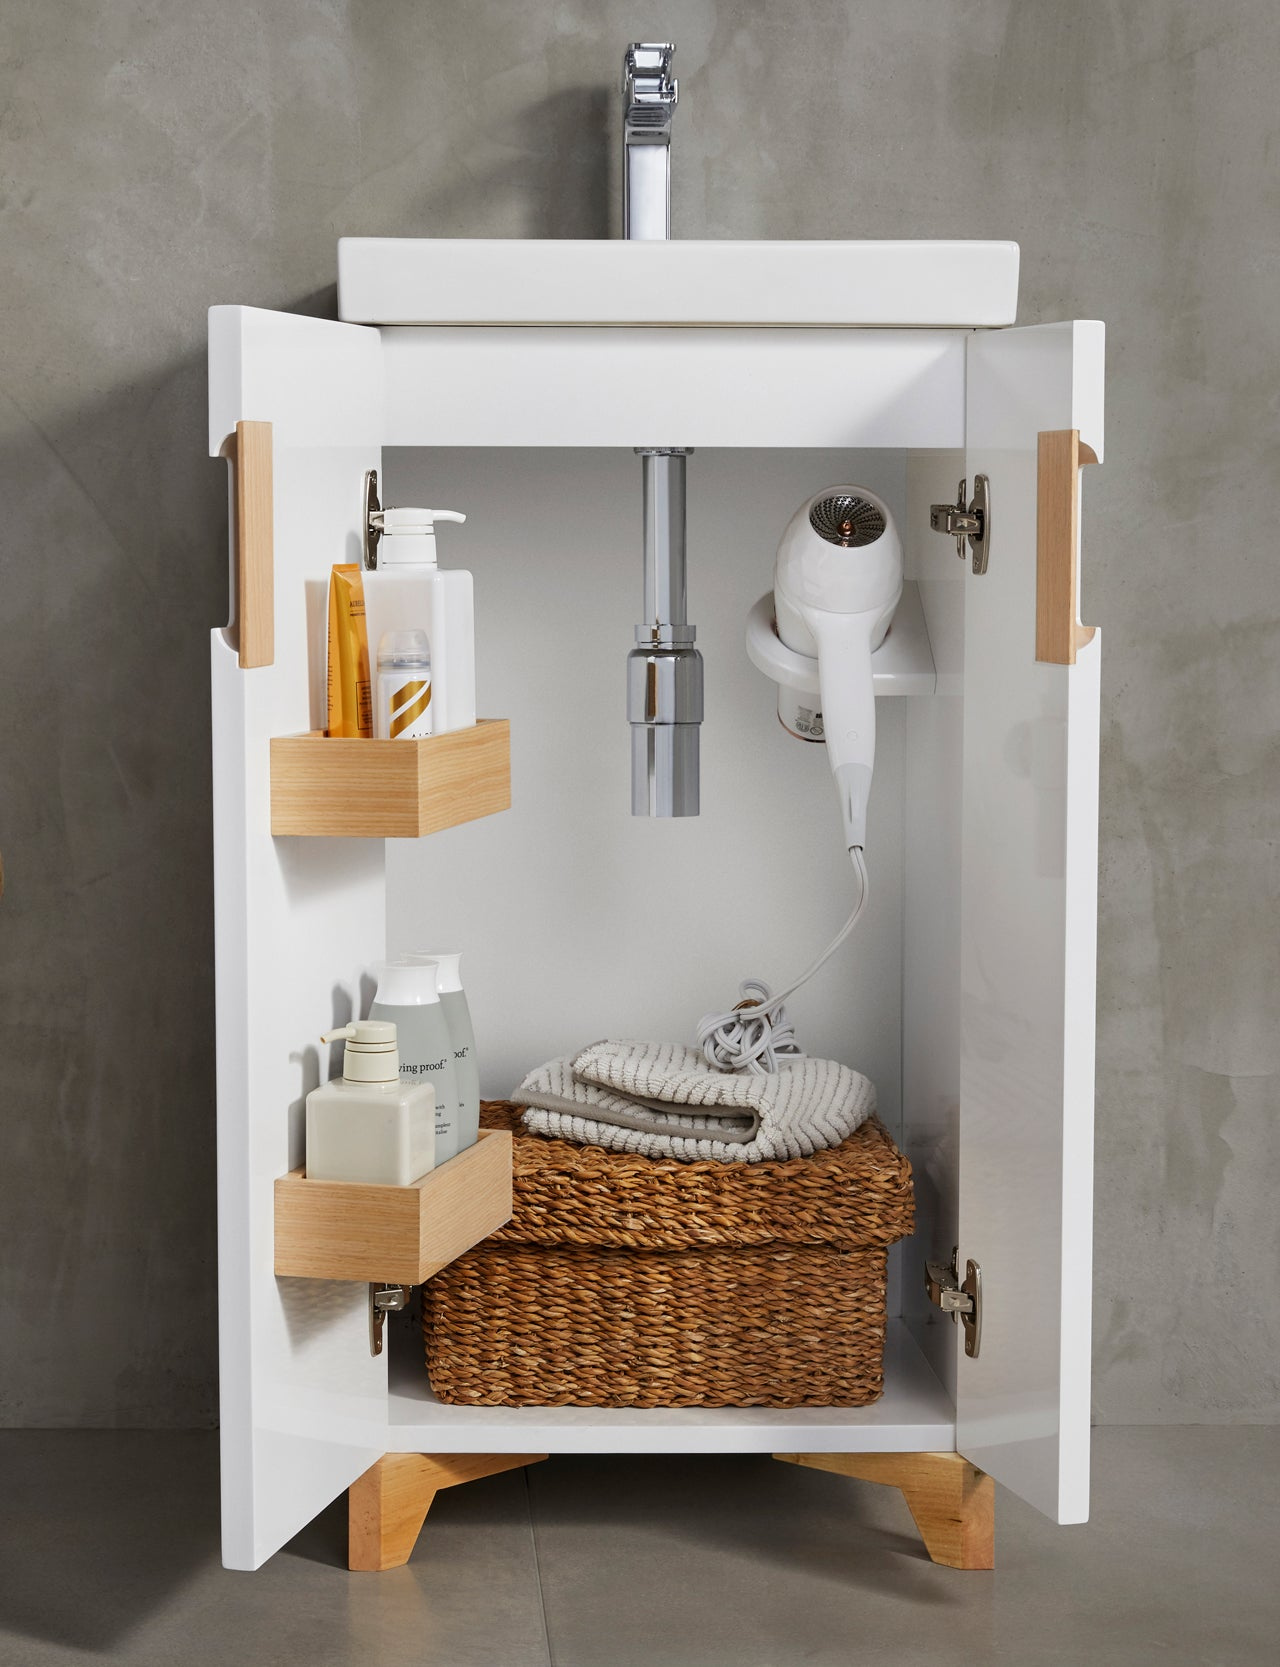 Tiny Triumph: 30 Of The Best Small Bathroom Design Ideas